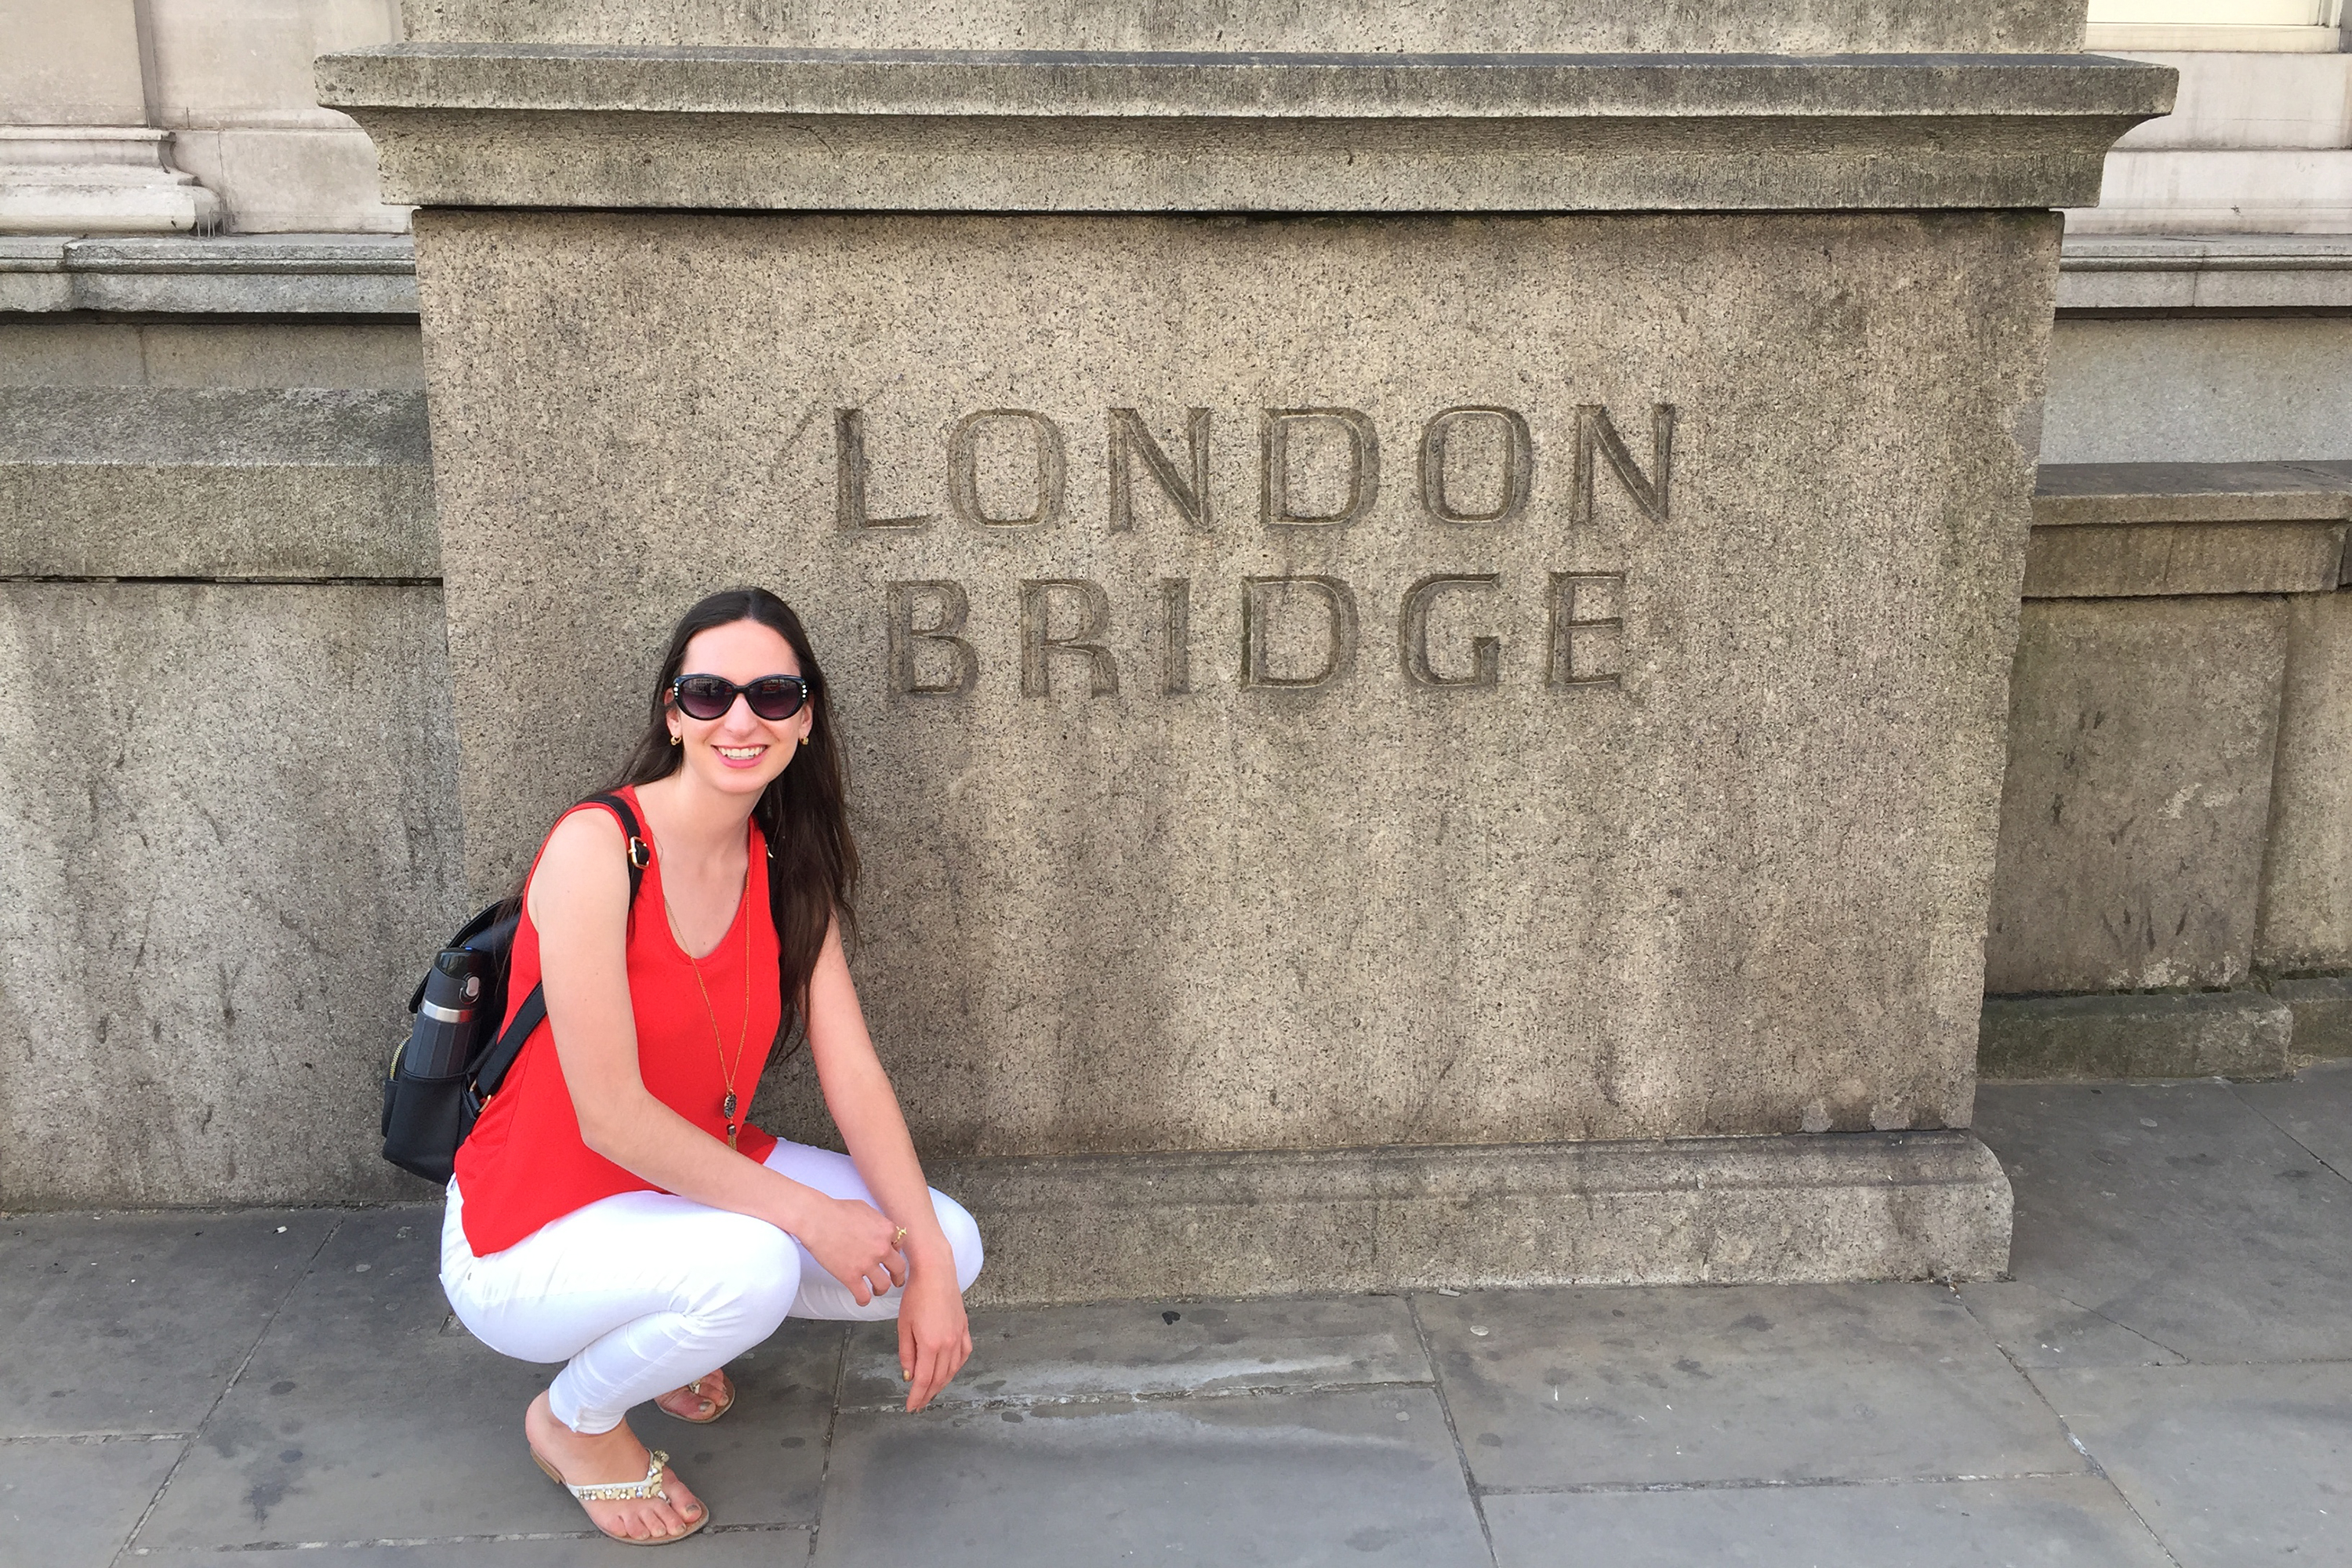 Anna Zarra Aldrich '20 (CLAS) at London Bridge during her Education Abroad experience in summer 2018.